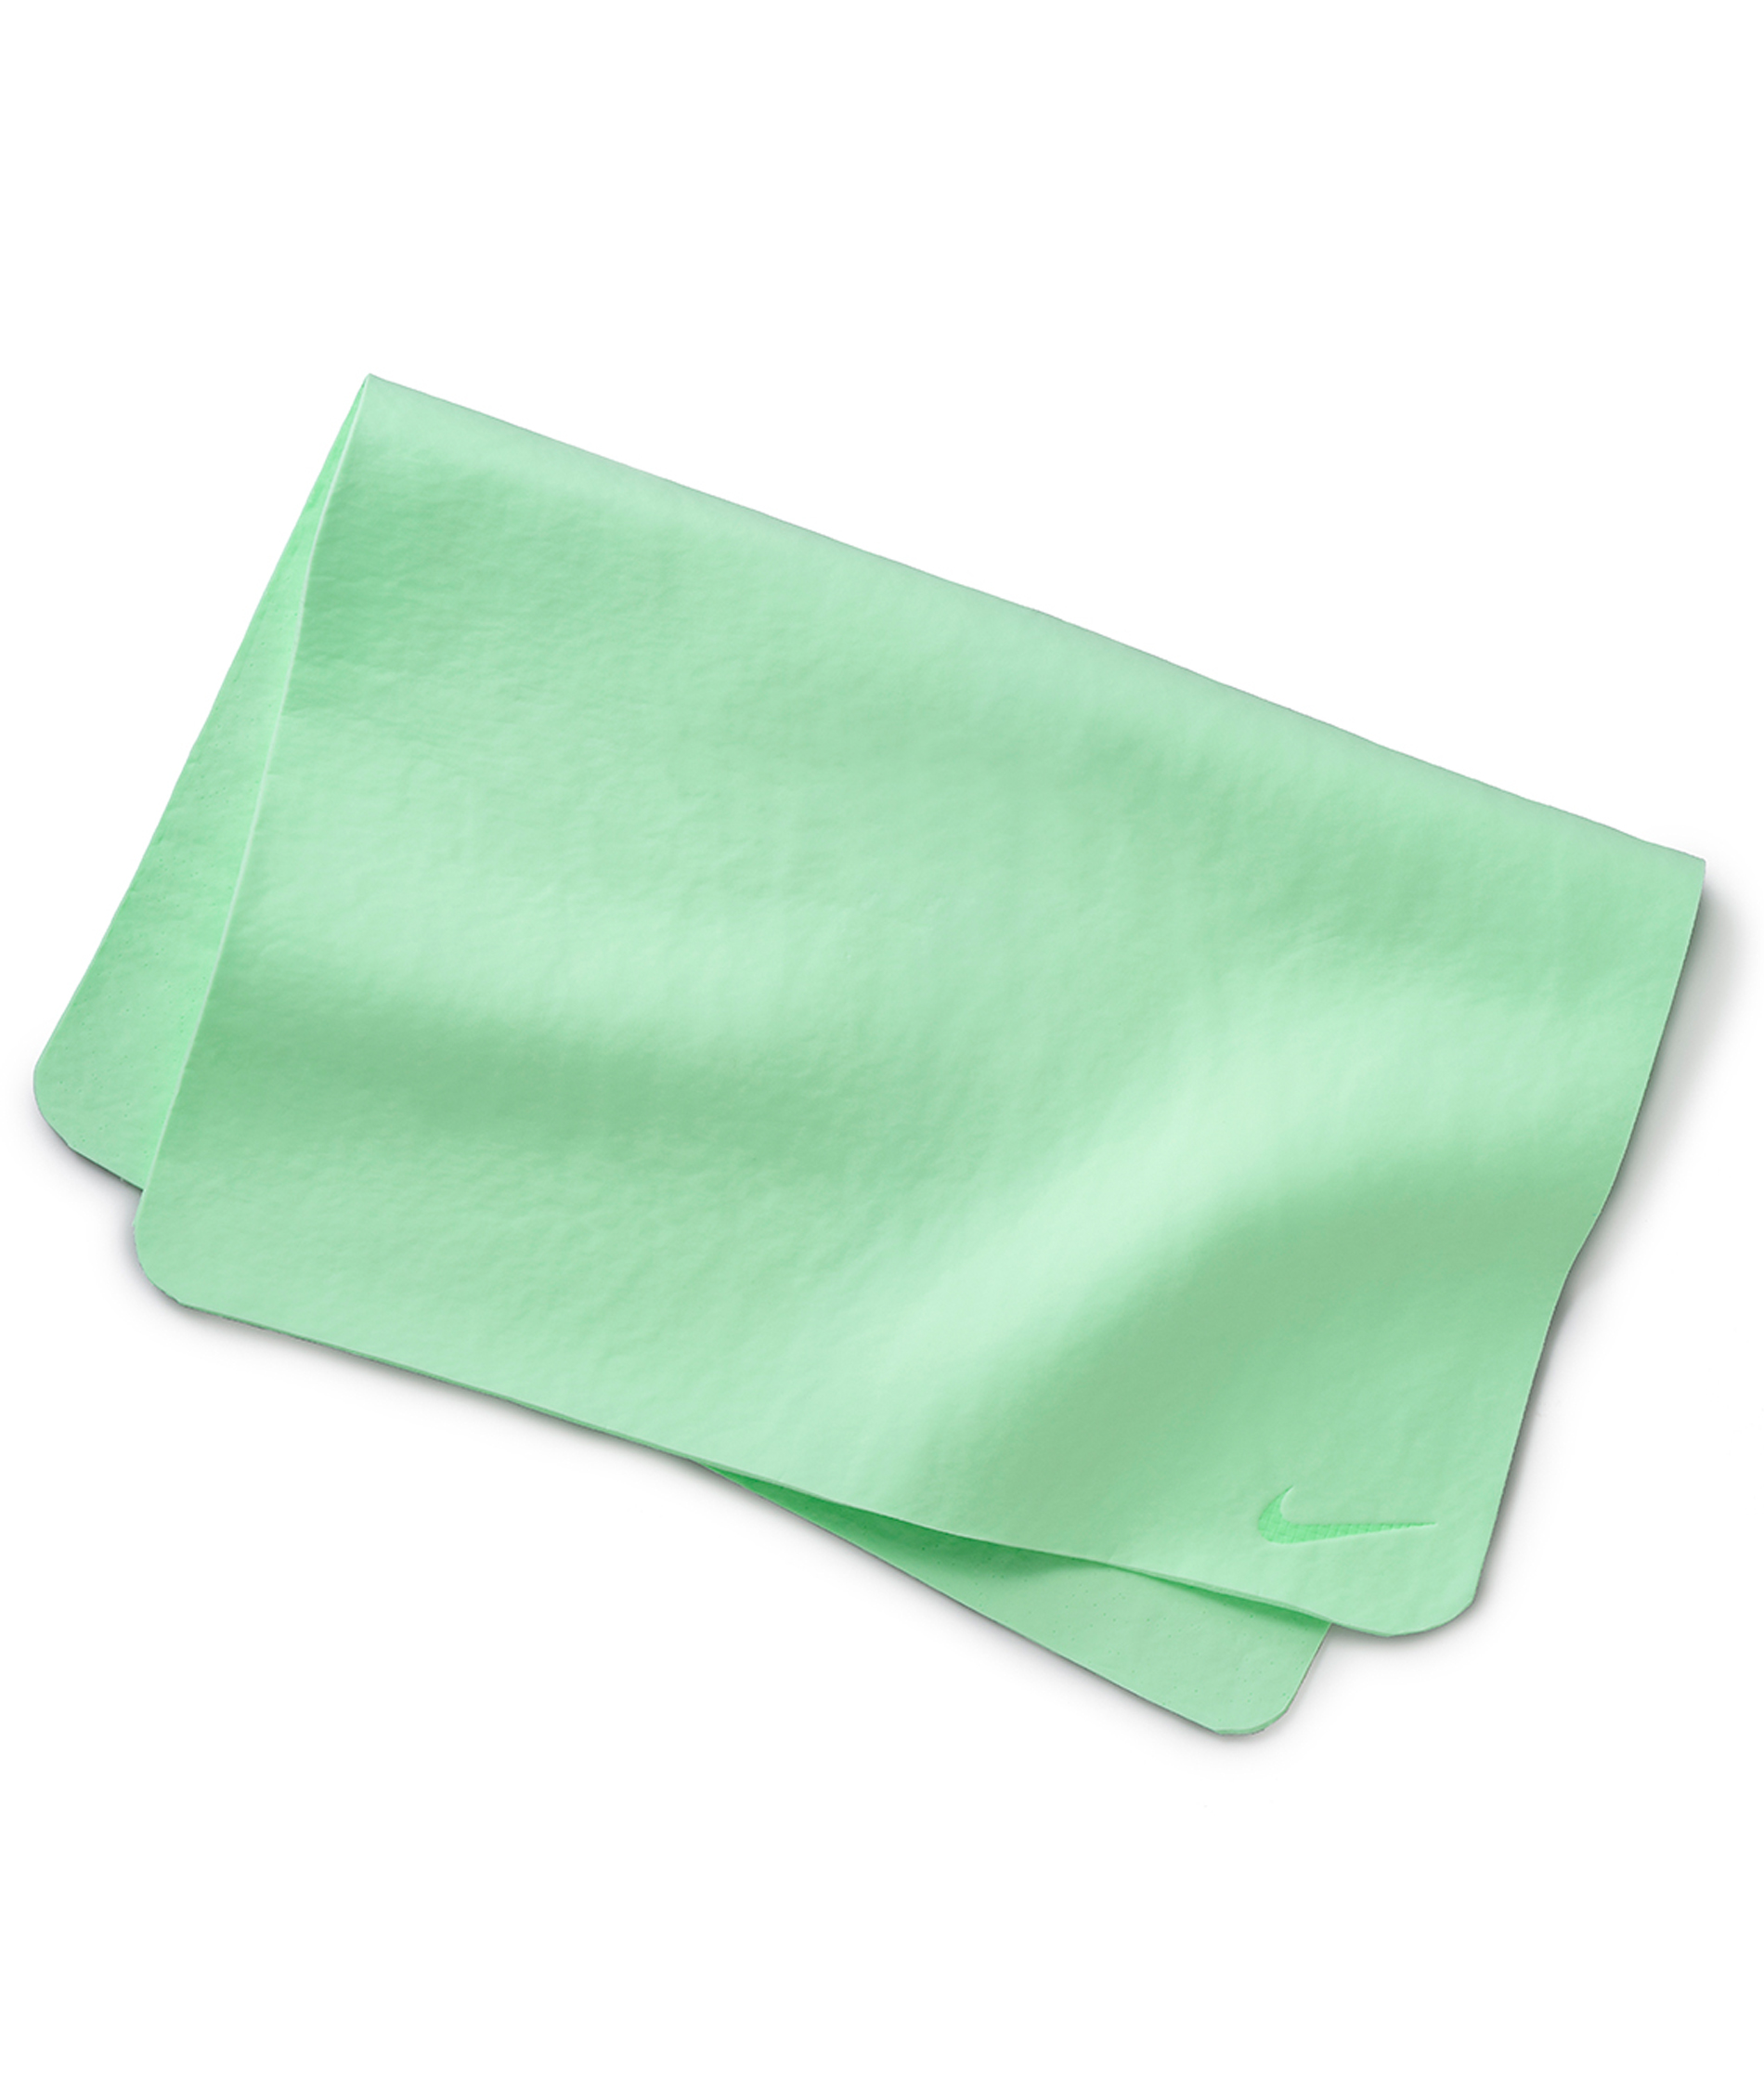 Nike Swim Large Hydro Towel - Green